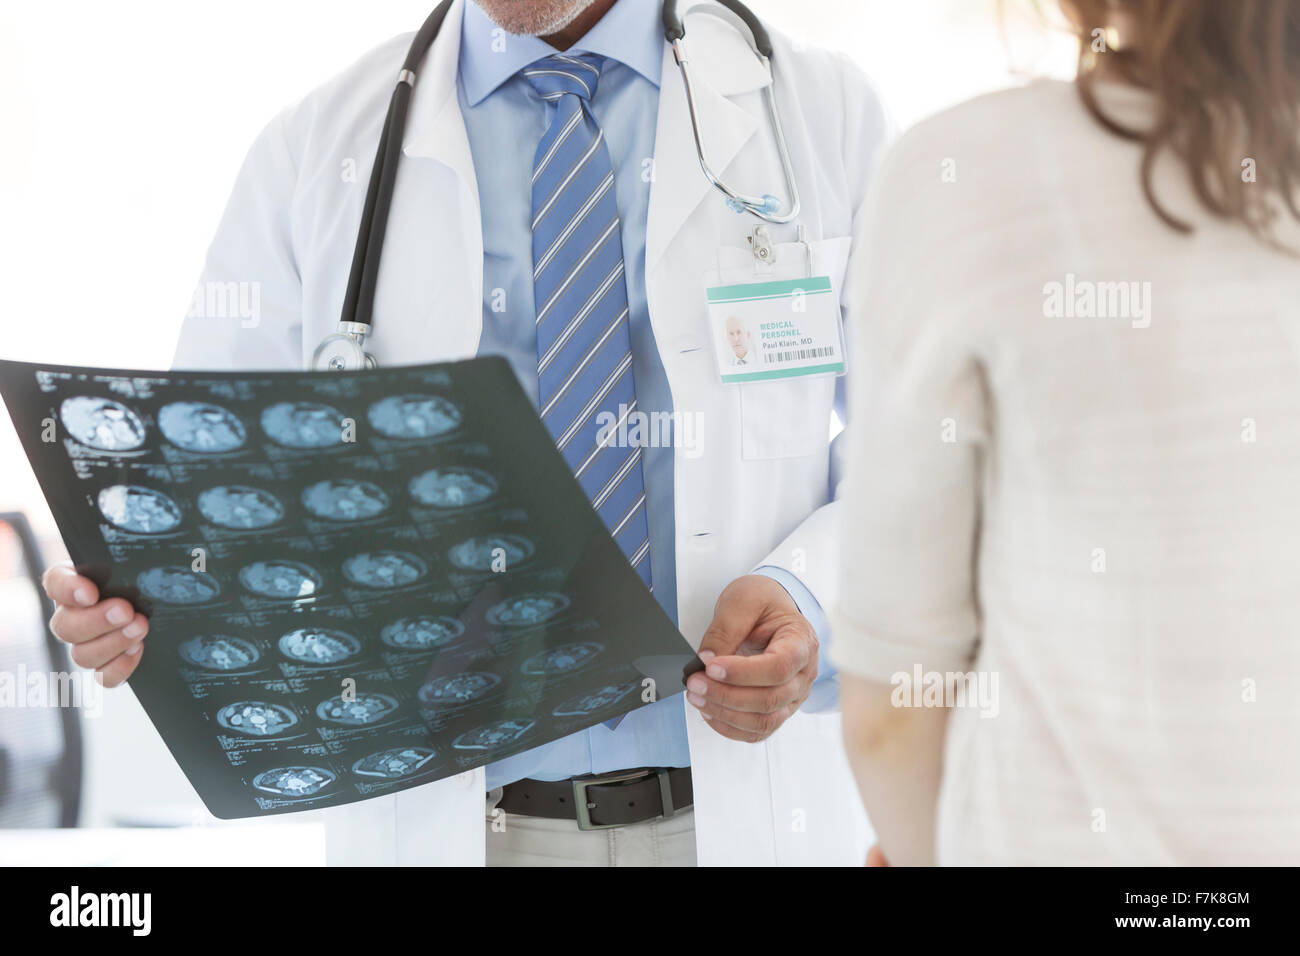 Doctor reviewing x-rays with patient - Stock Image